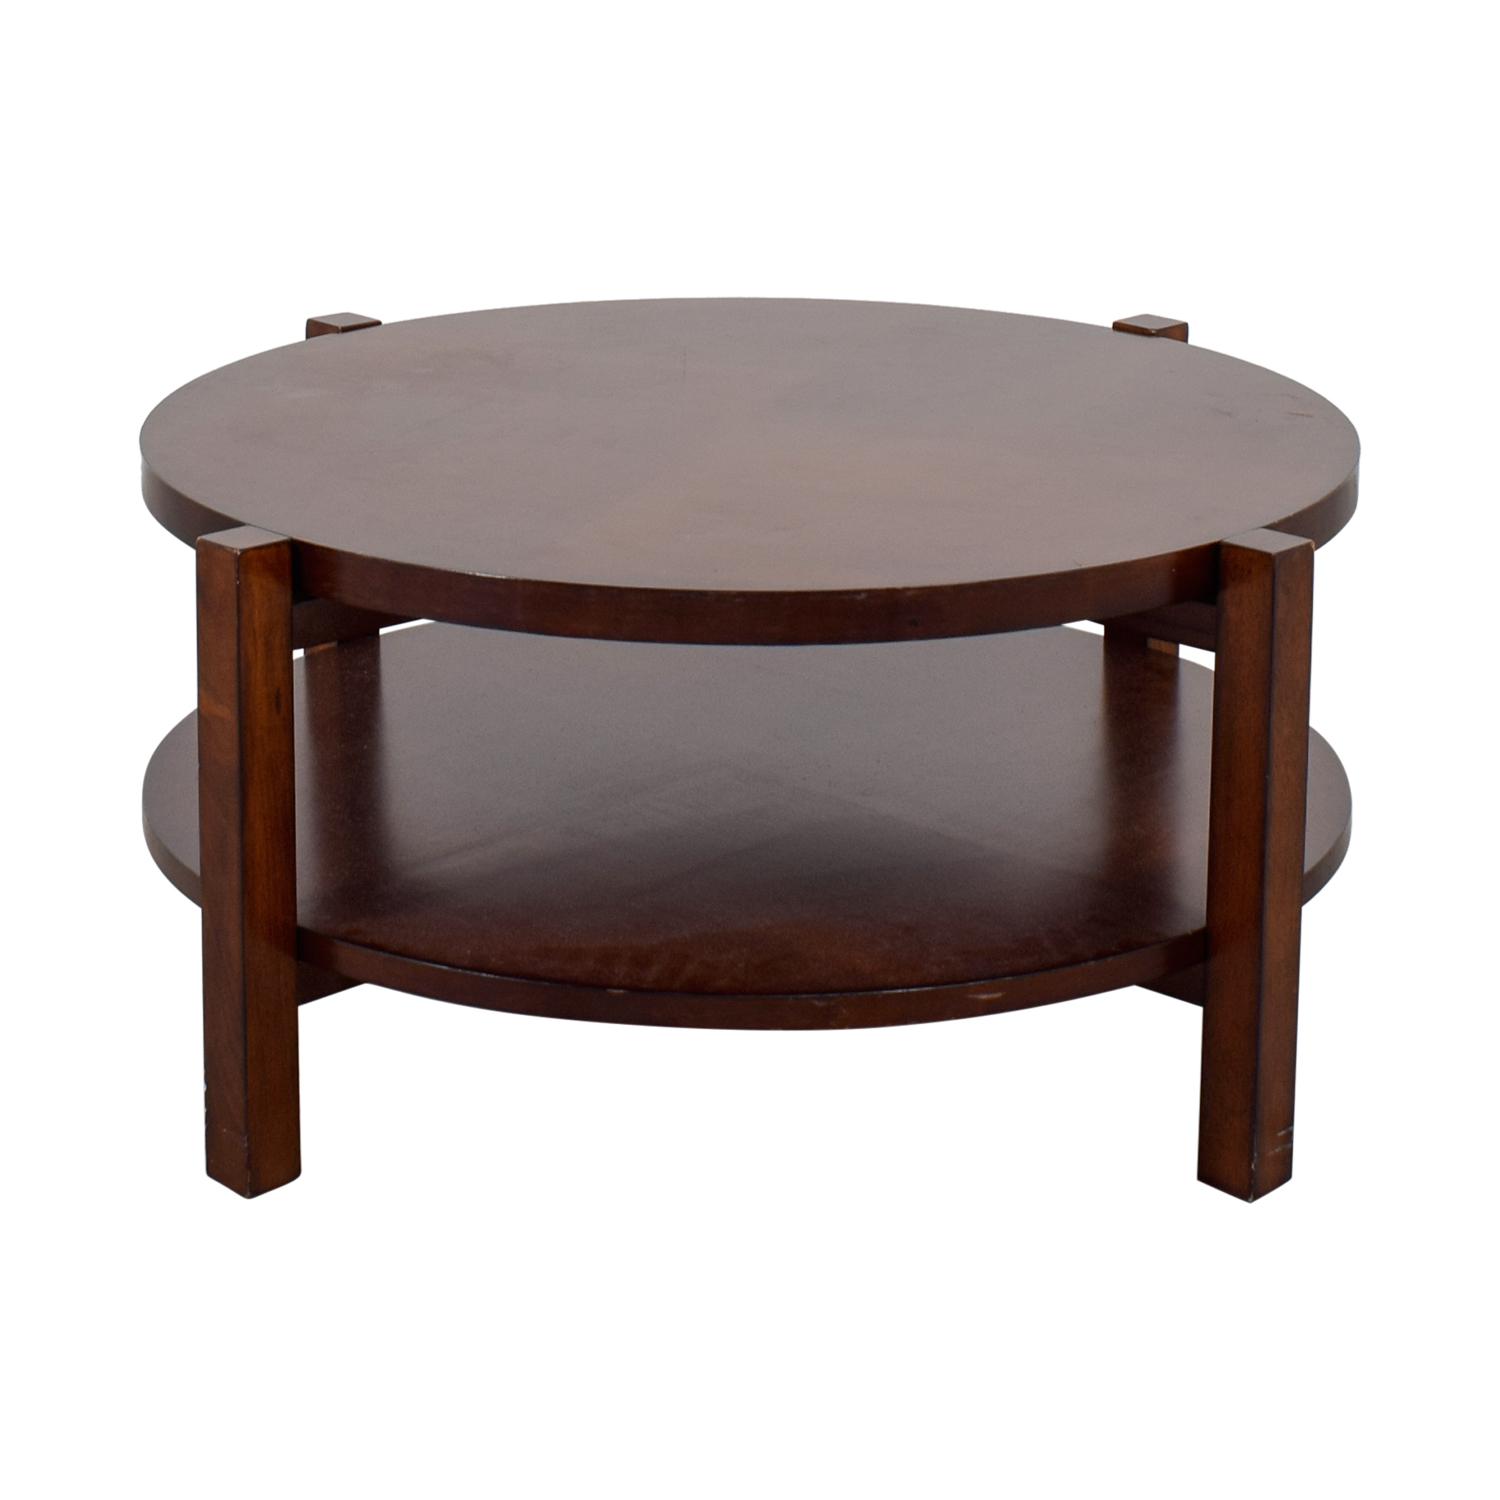 90 off bassett furniture bassett rotating round wood coffee table tables